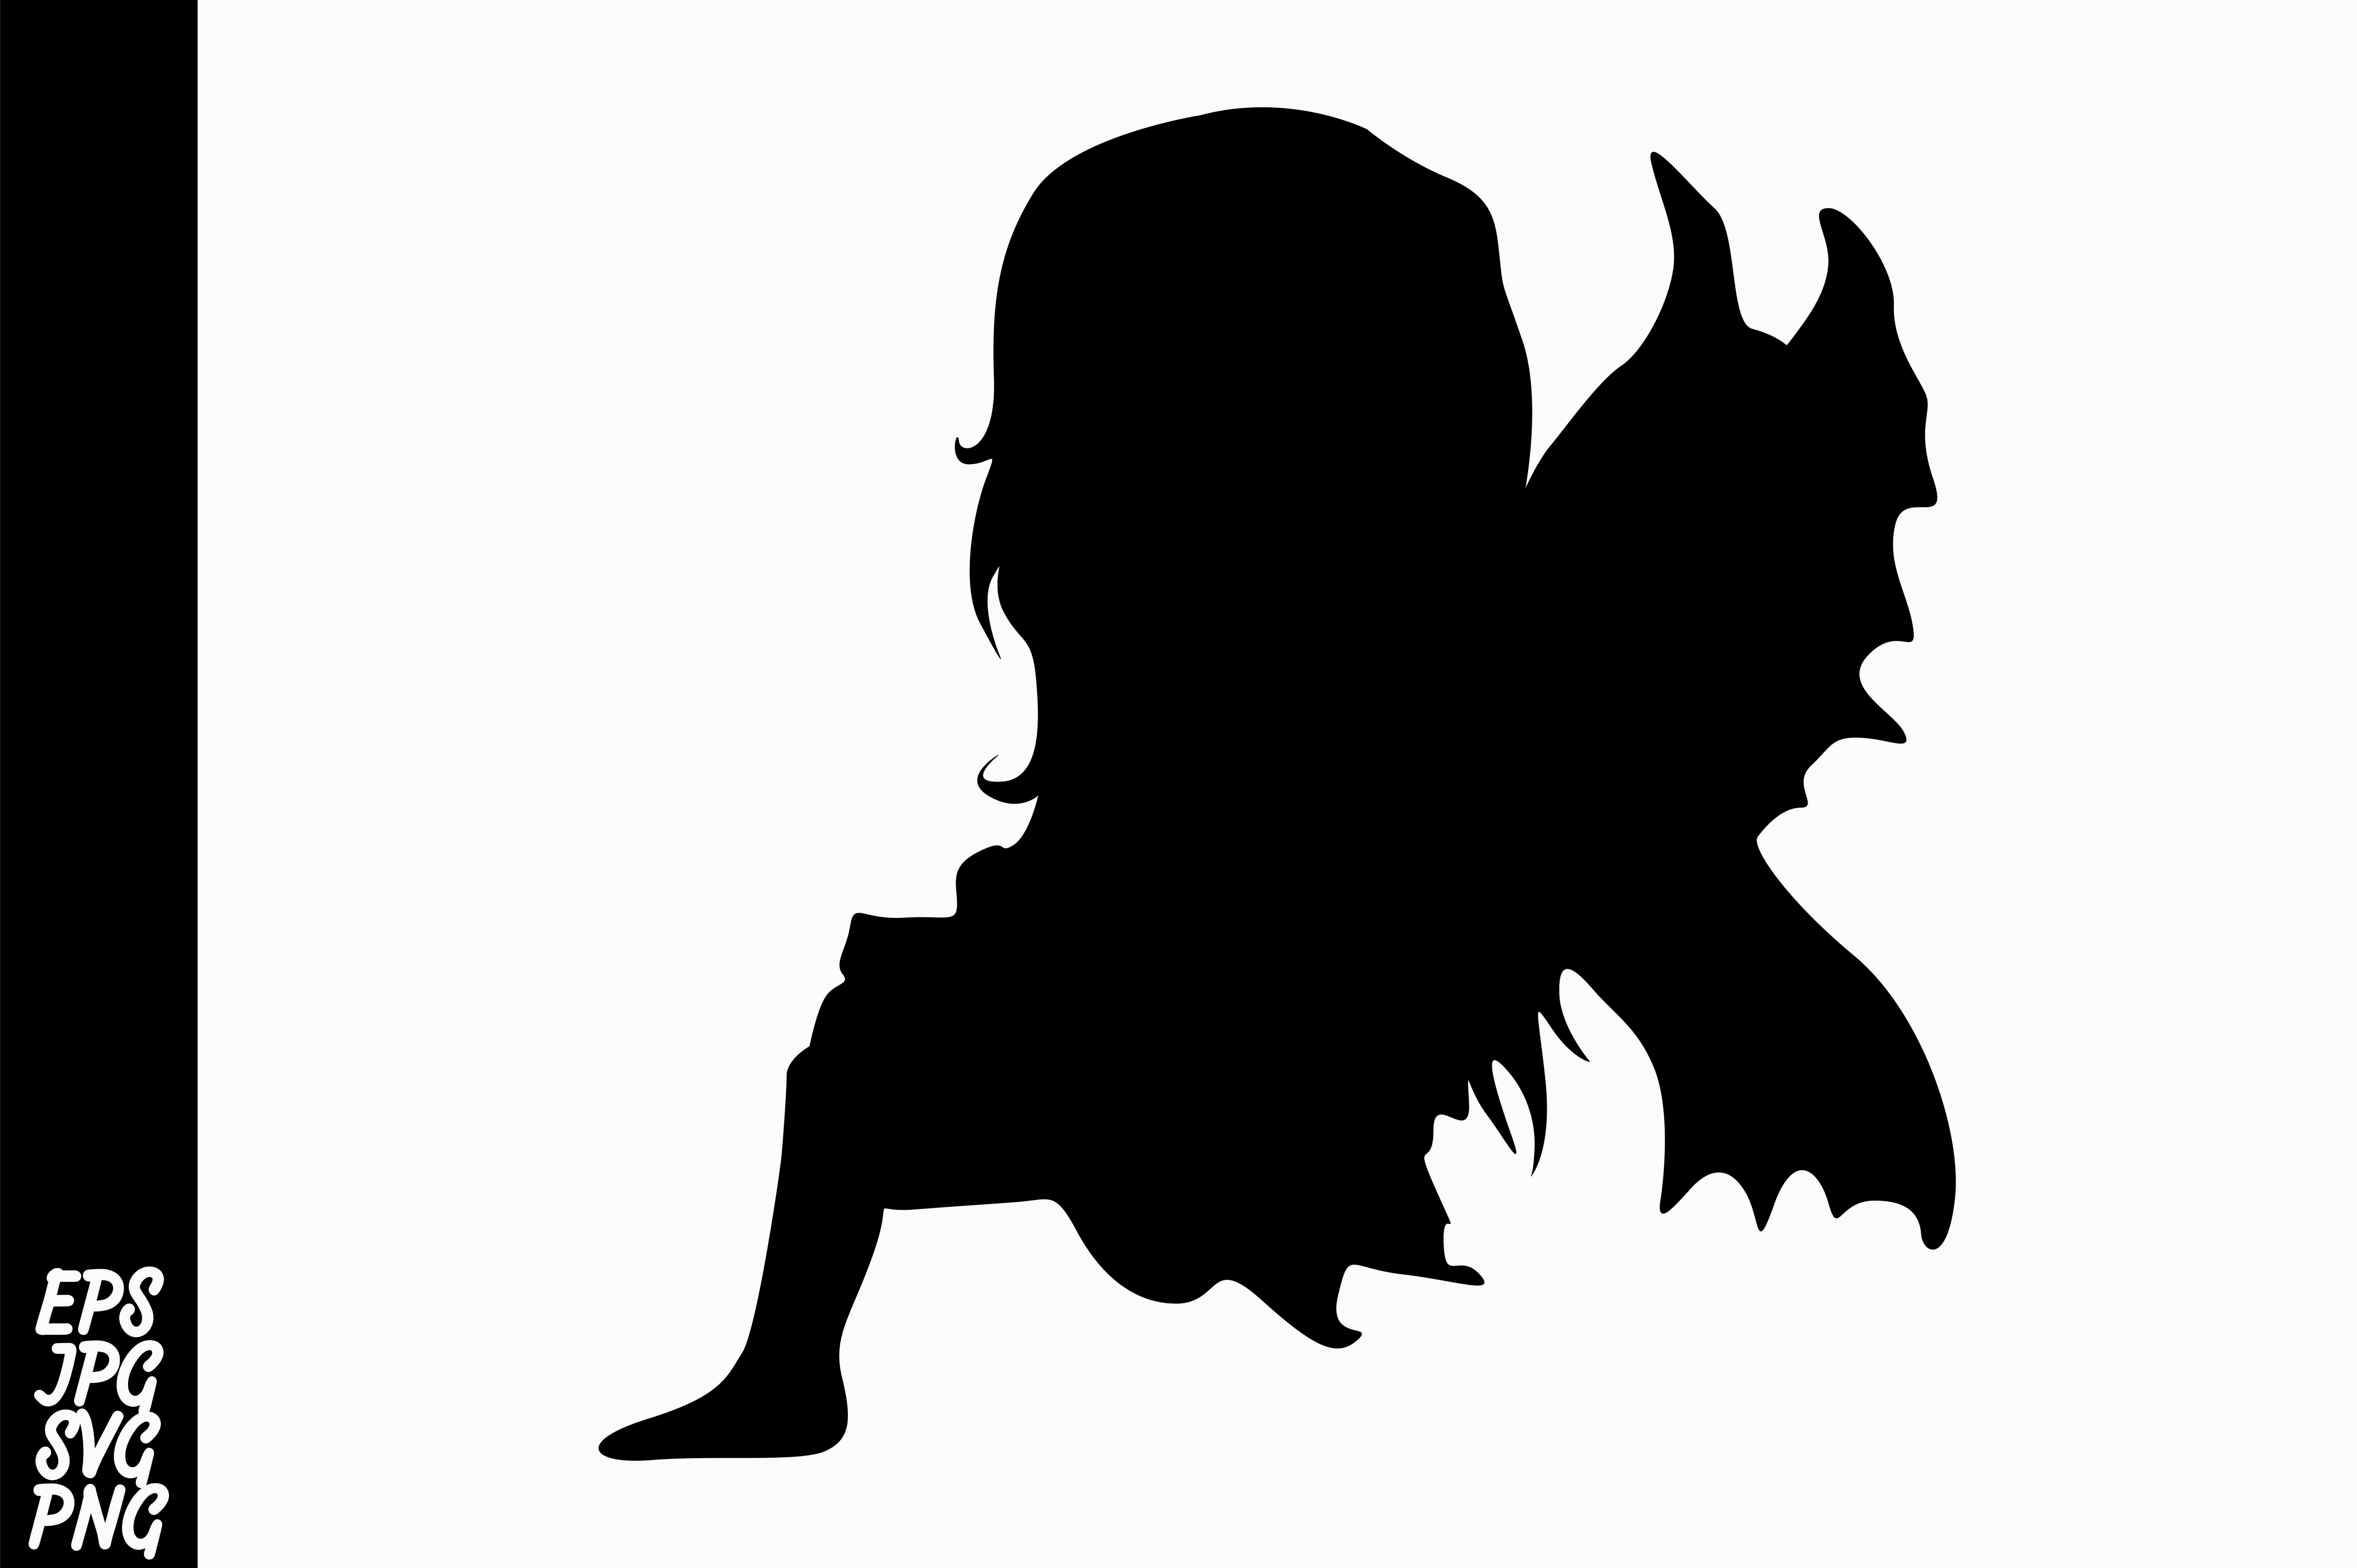 Download Free Fairy Silhouette Graphic By Arief Sapta Adjie Creative Fabrica for Cricut Explore, Silhouette and other cutting machines.